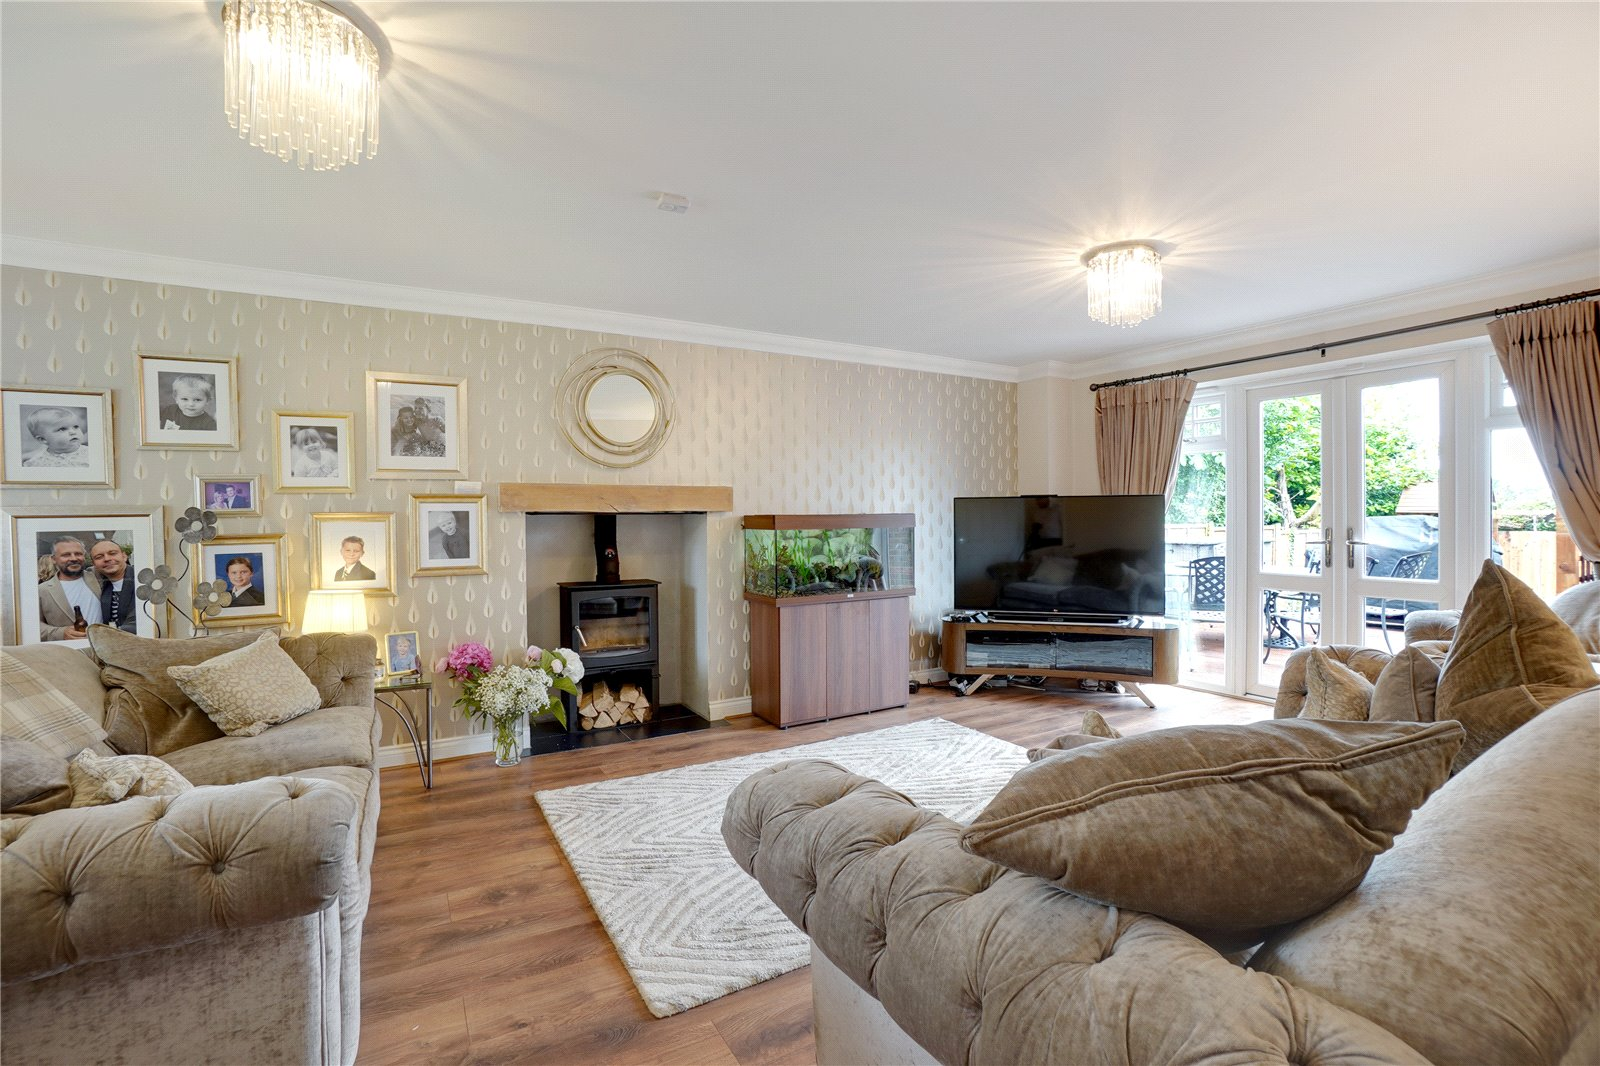 5 bed house for sale in The Morlings, Bearsted, ME14